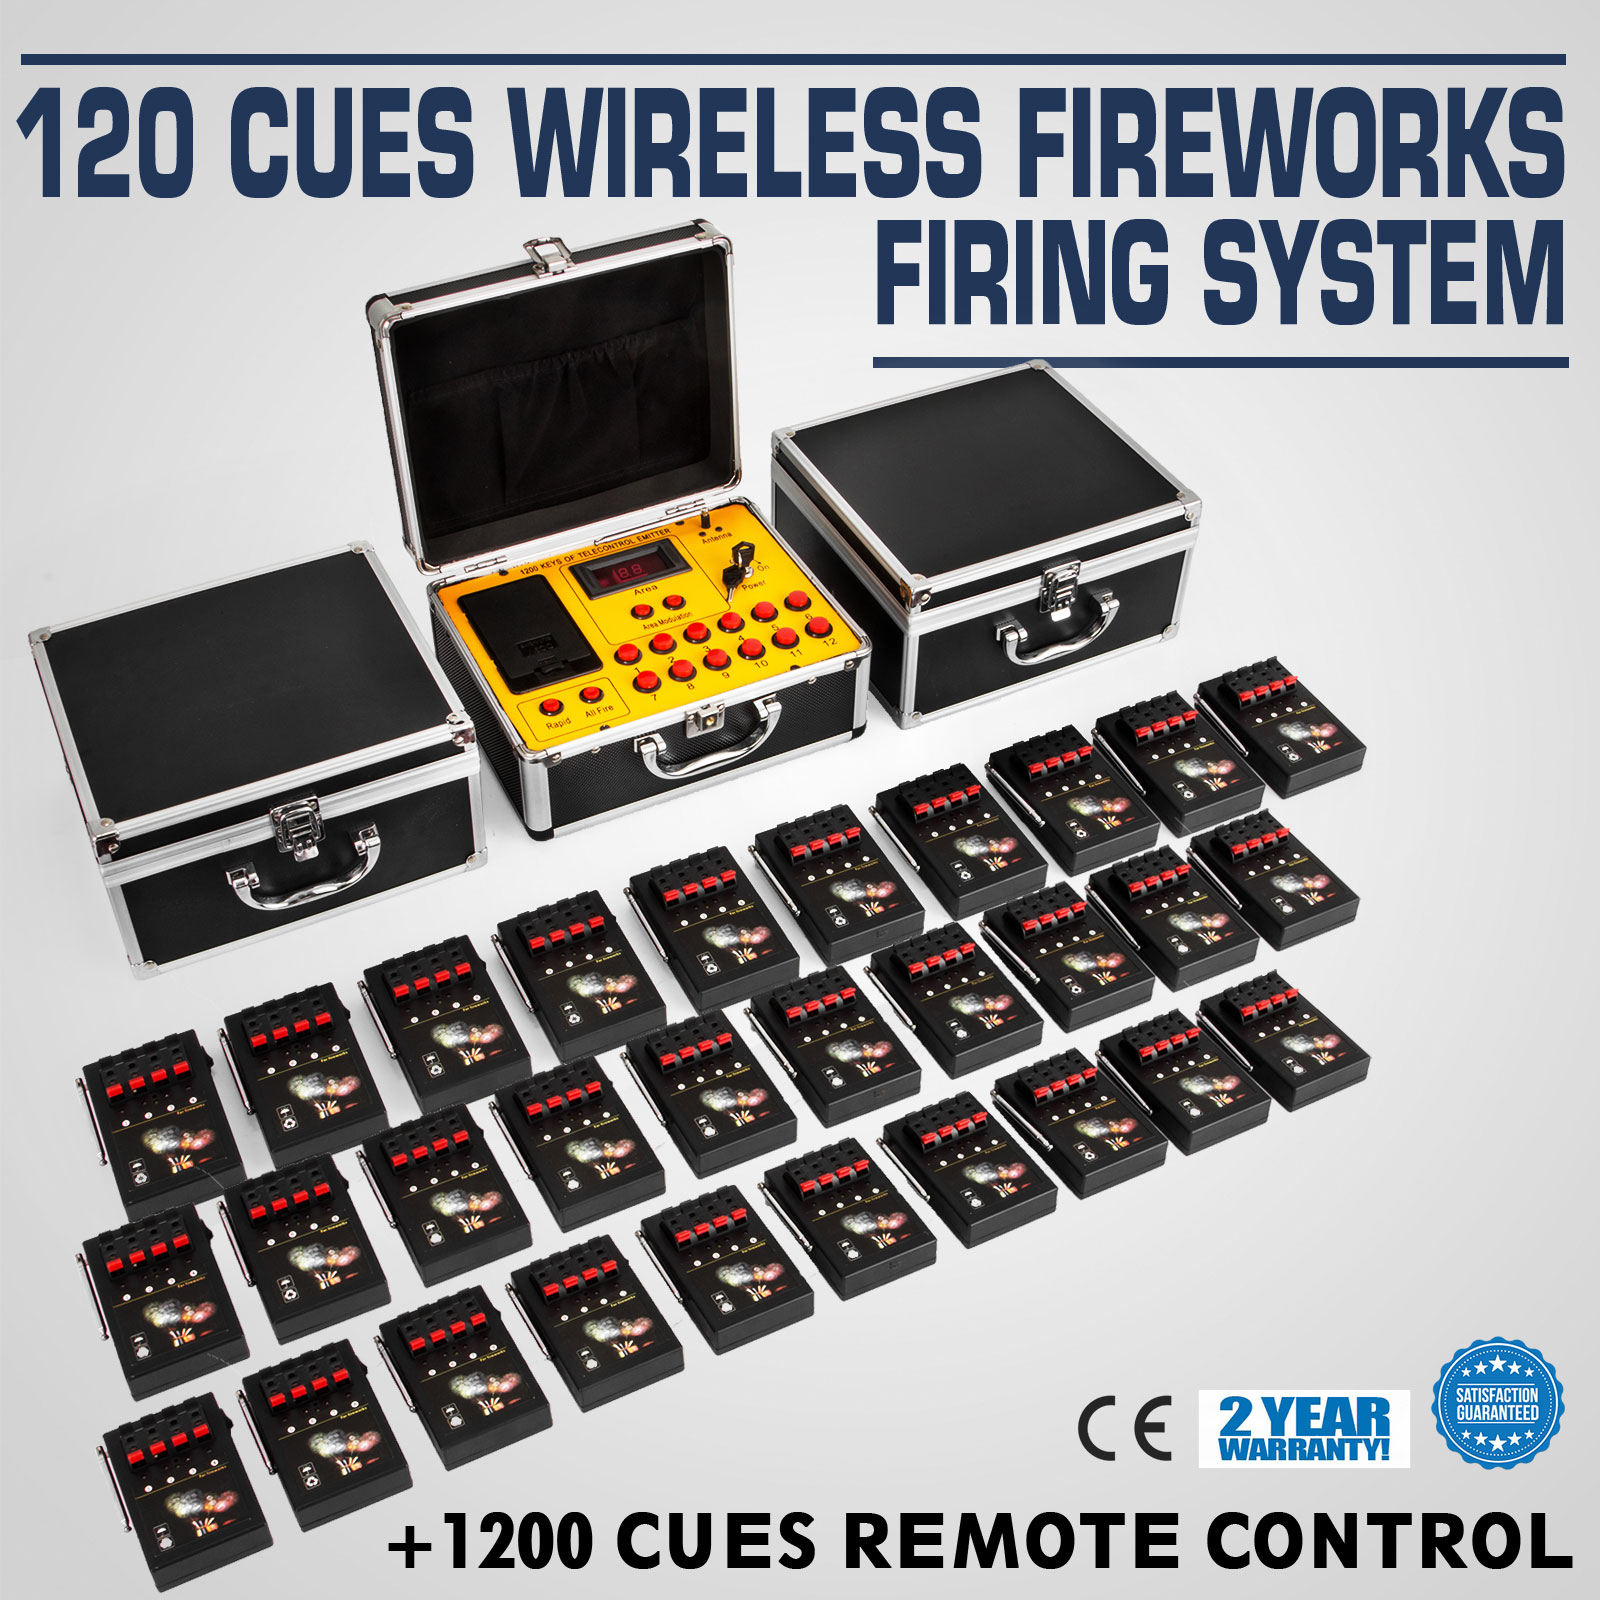 120 Cues Fireworks Firing System Electric Control Equipment Party New Year